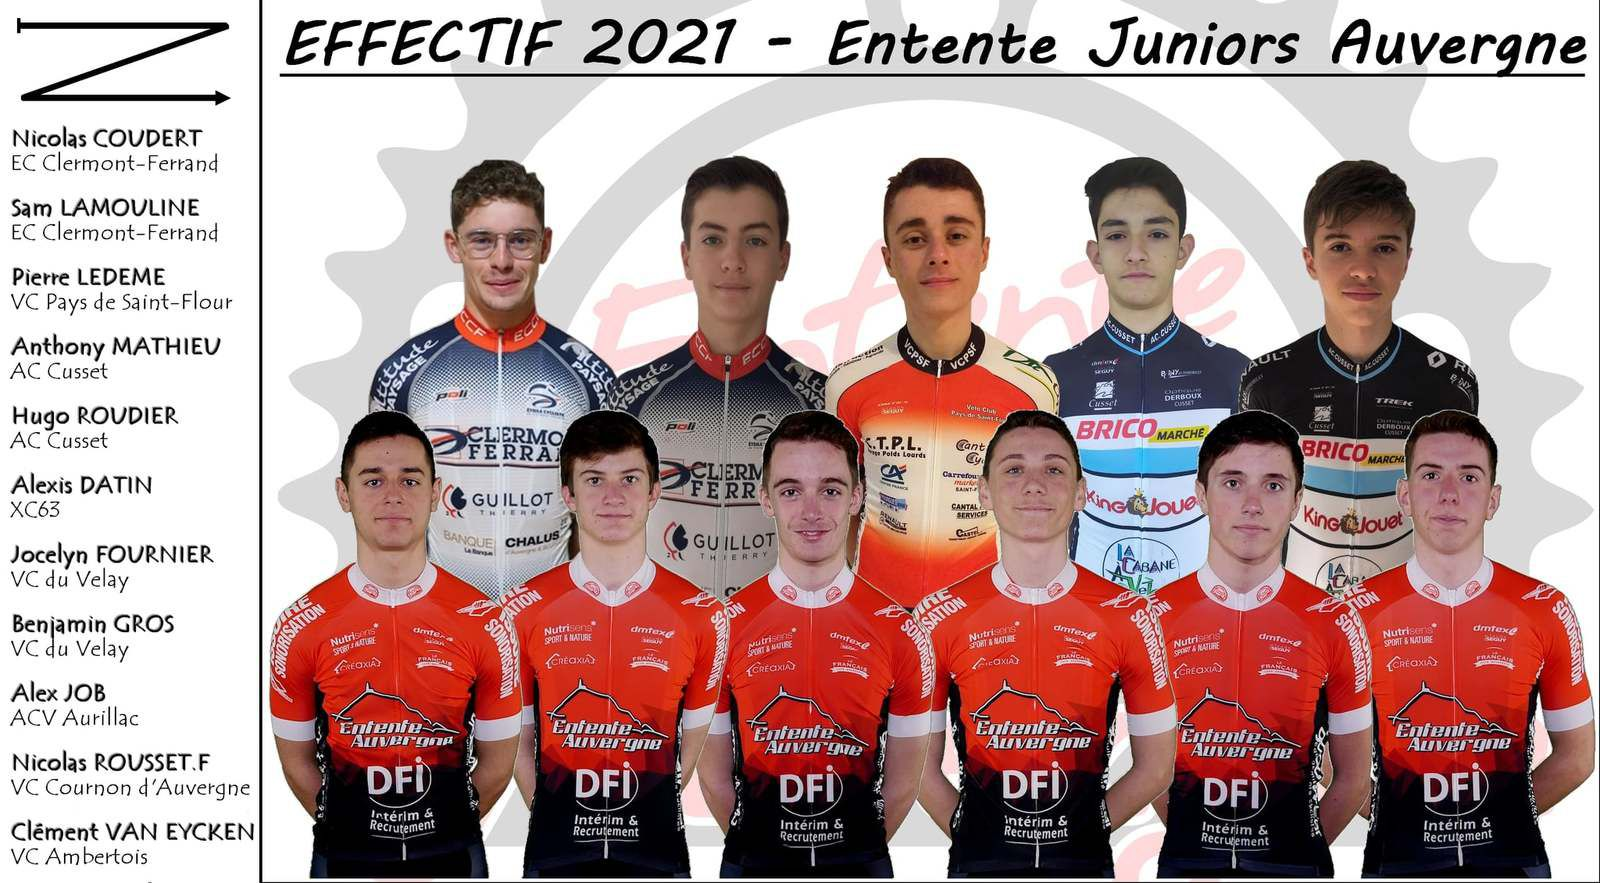 Le nouvel effectif de l'Entente Juniors Auvergne